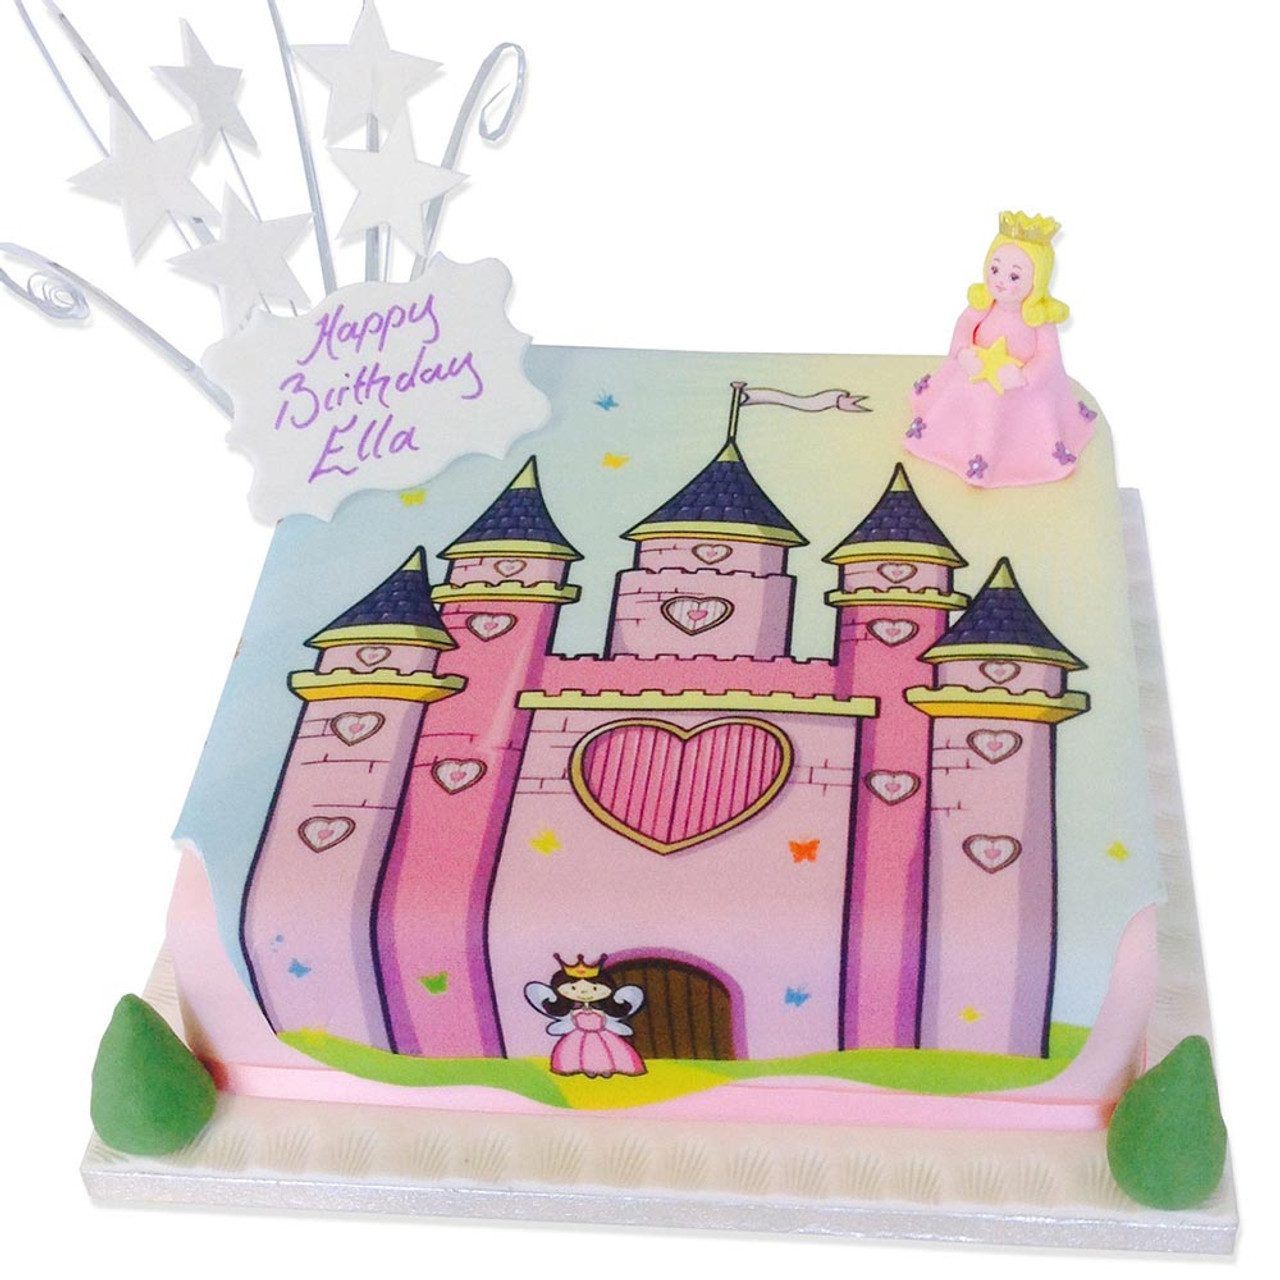 Remarkable Princess Castle Cake Girls Birthday Cakes The Brilliant Bakers Funny Birthday Cards Online Alyptdamsfinfo